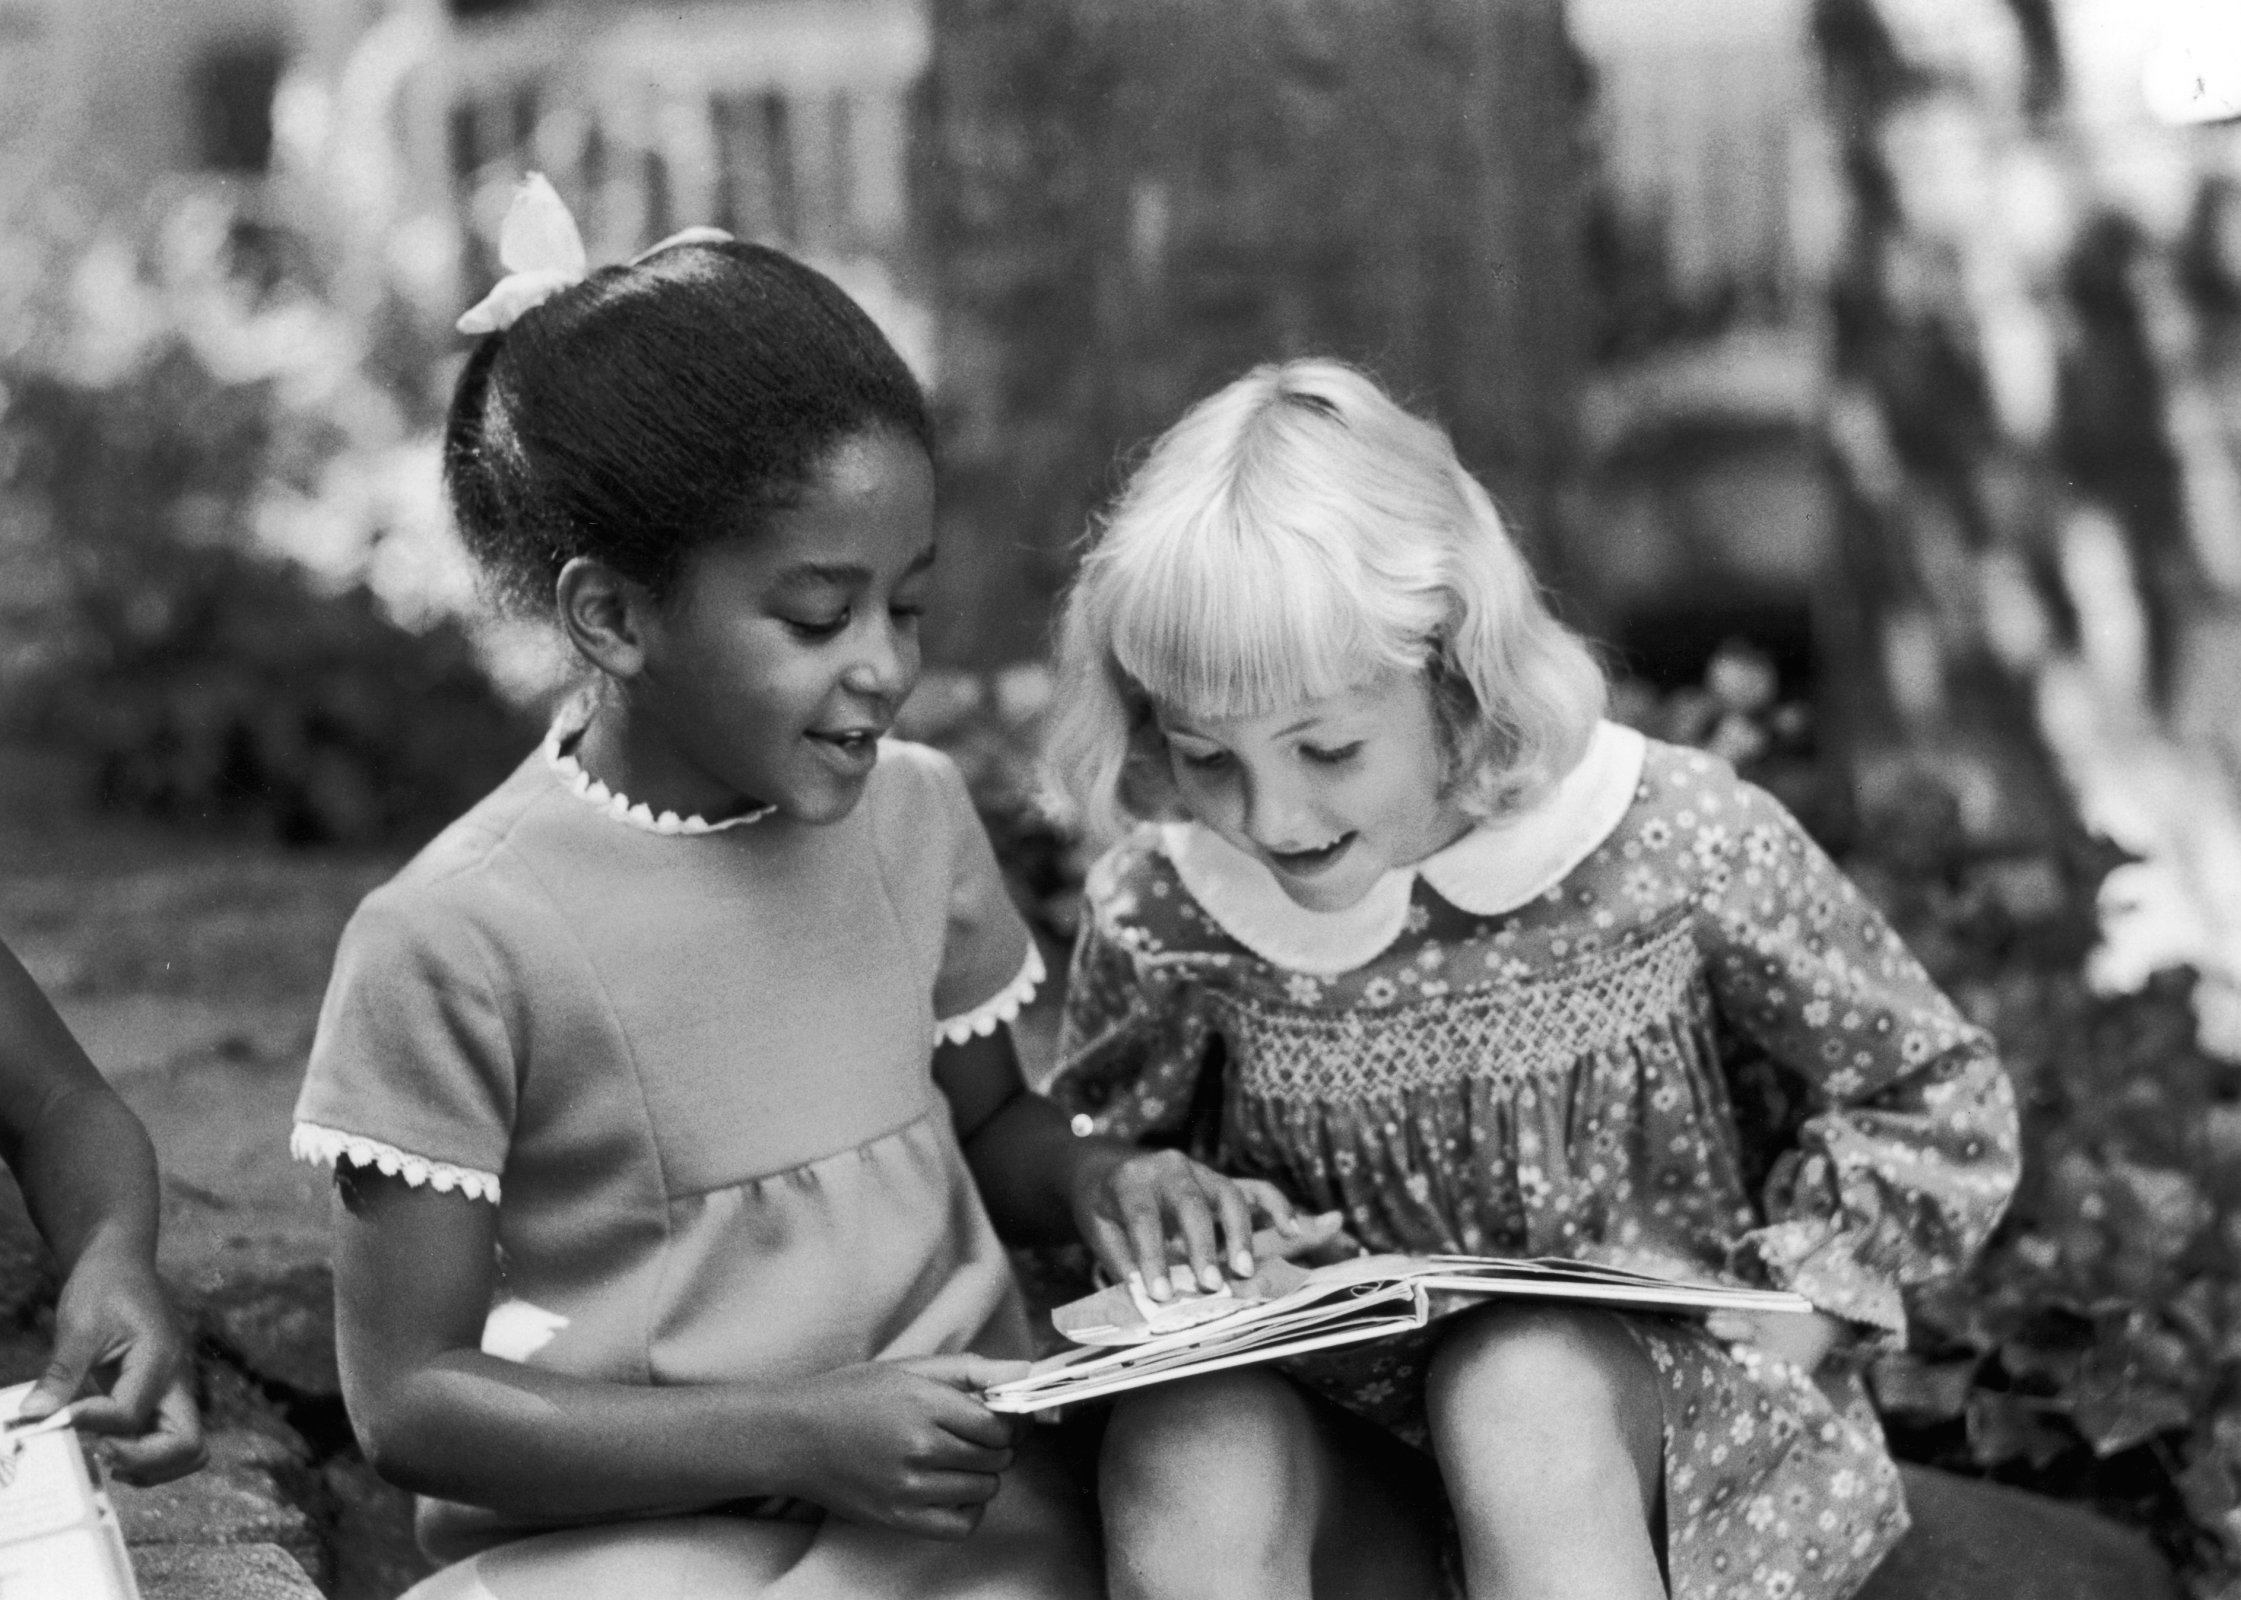 Two children read a book together.